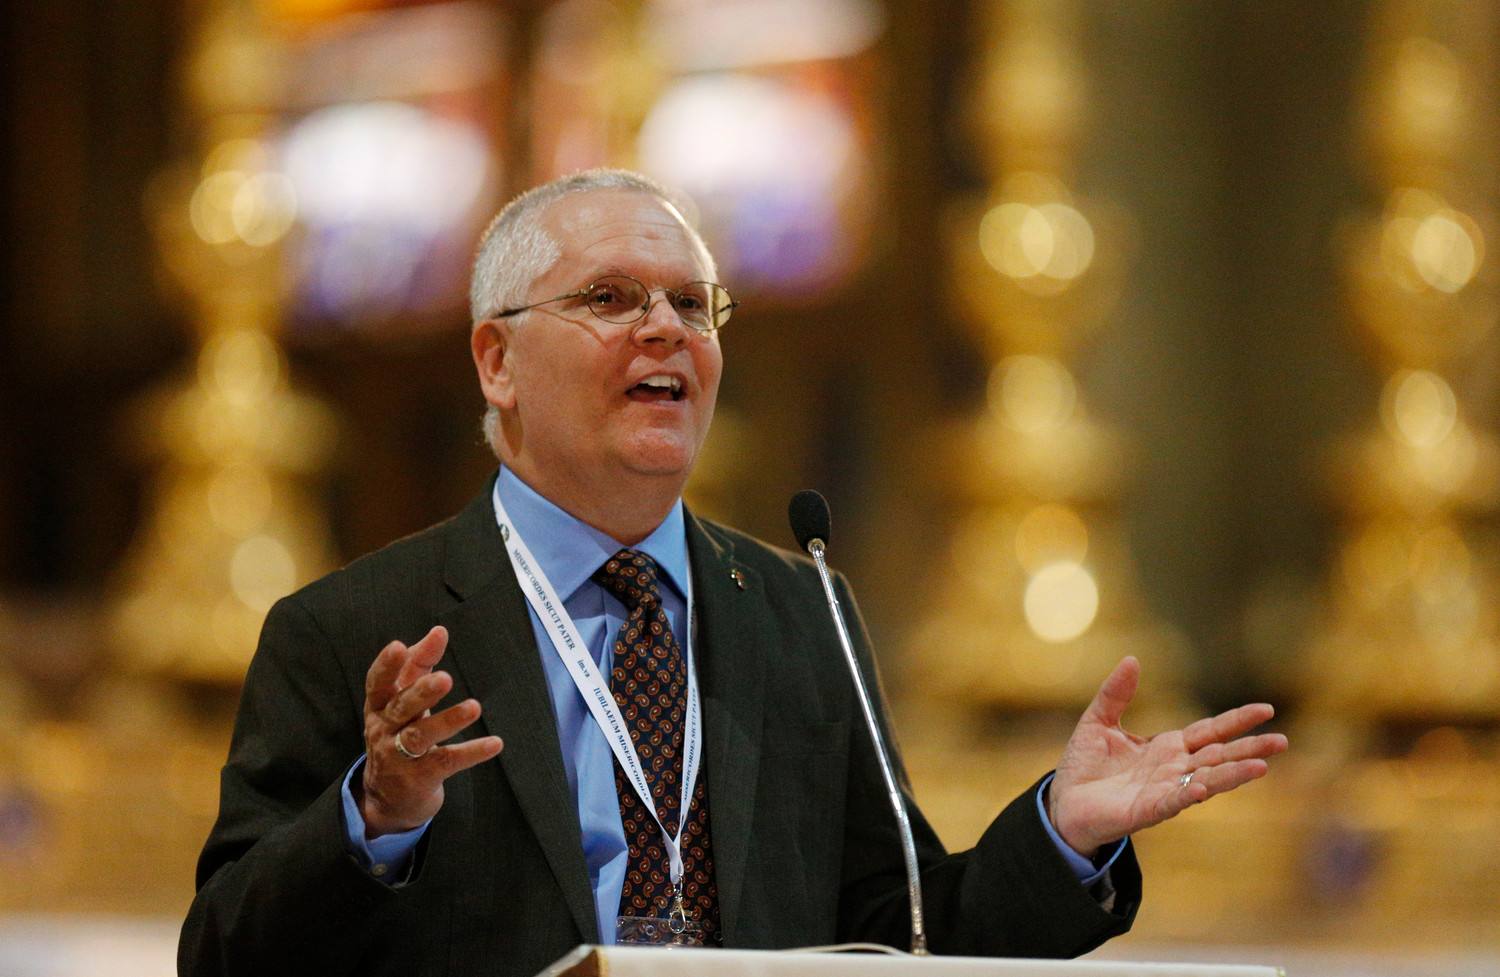 CALLED—Deacon Greg Kandra of the Diocese of Brooklyn speaks in 2016 at a conference for deacons and their wives at the Basilica of Santa Maria Sopra Minerva in Rome. Deacon Kandra had a successful journalism career and was an observant, Mass-going Catholic, but 9/11 changed his life and put him on the path to the diaconate.